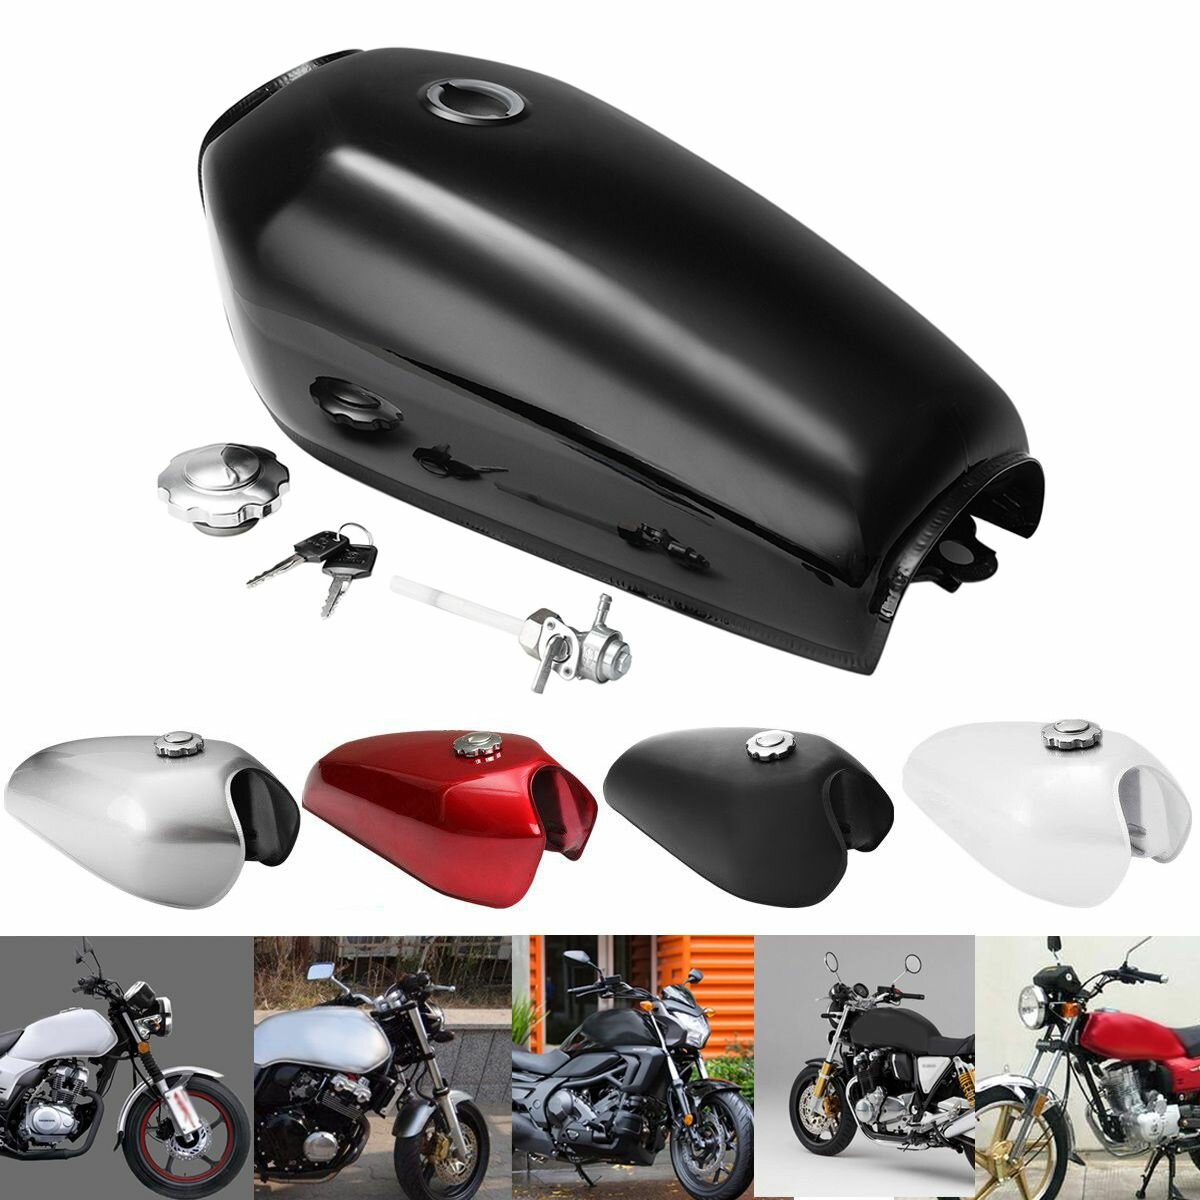 Motorcycle cafe racer vintage fuel gas tank with tap for honda cg125 motorcycle cafe racer vintage fuel gas tank with tap for honda cg125 aa001 fandeluxe Image collections